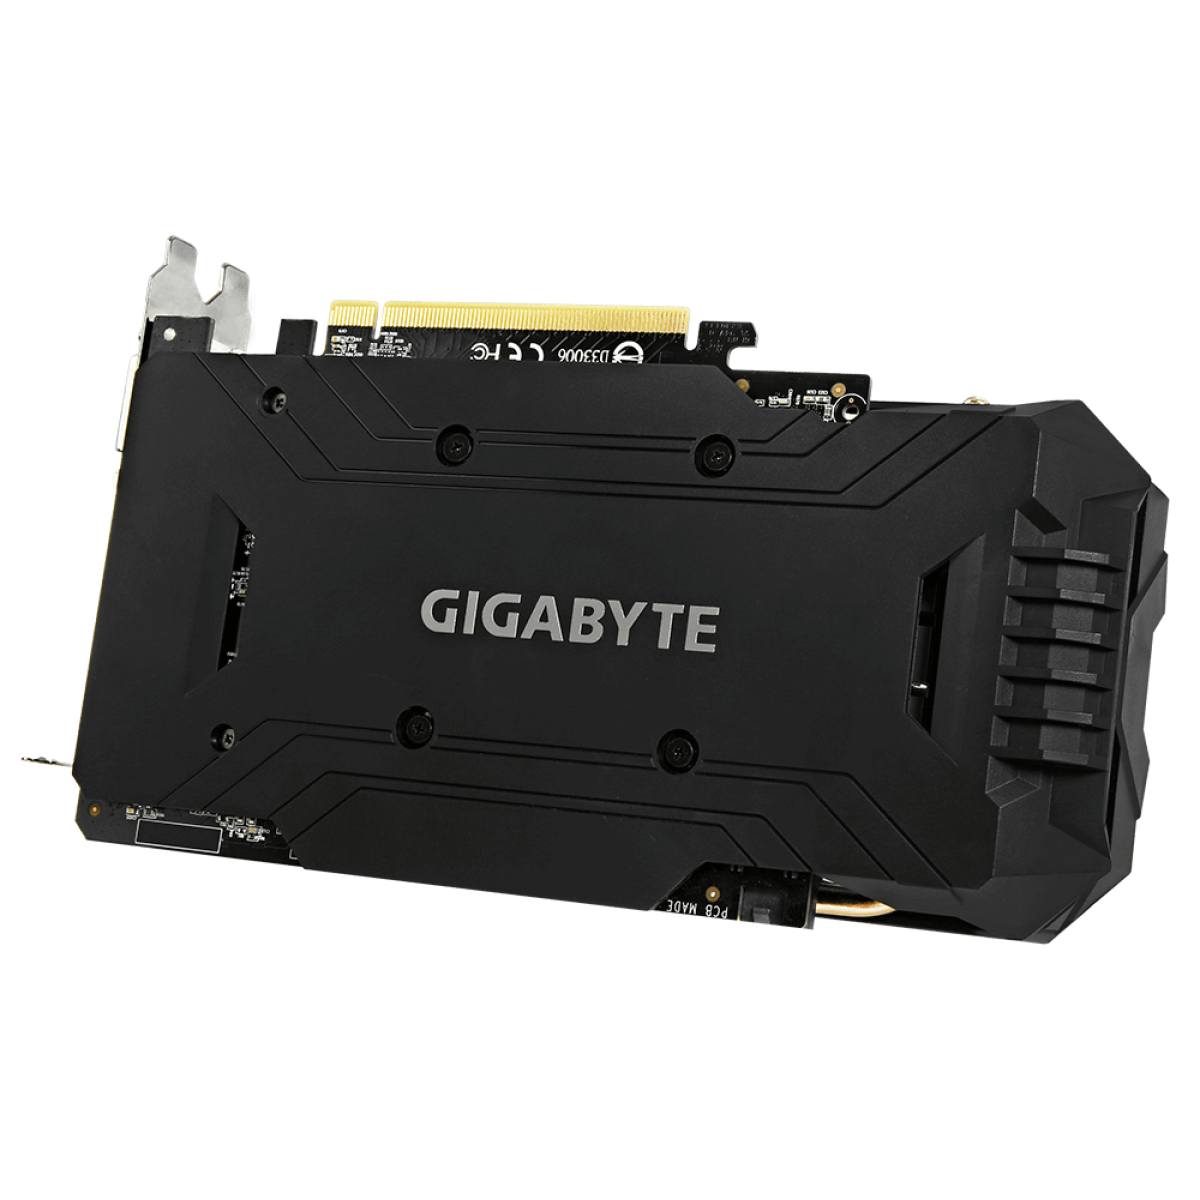 Placa de Vídeo Gigabyte Geforce GTX 1060 Windforce OC Dual, 3GB GDDR5, 192Bit, GV-N1060WF2OC-3GD